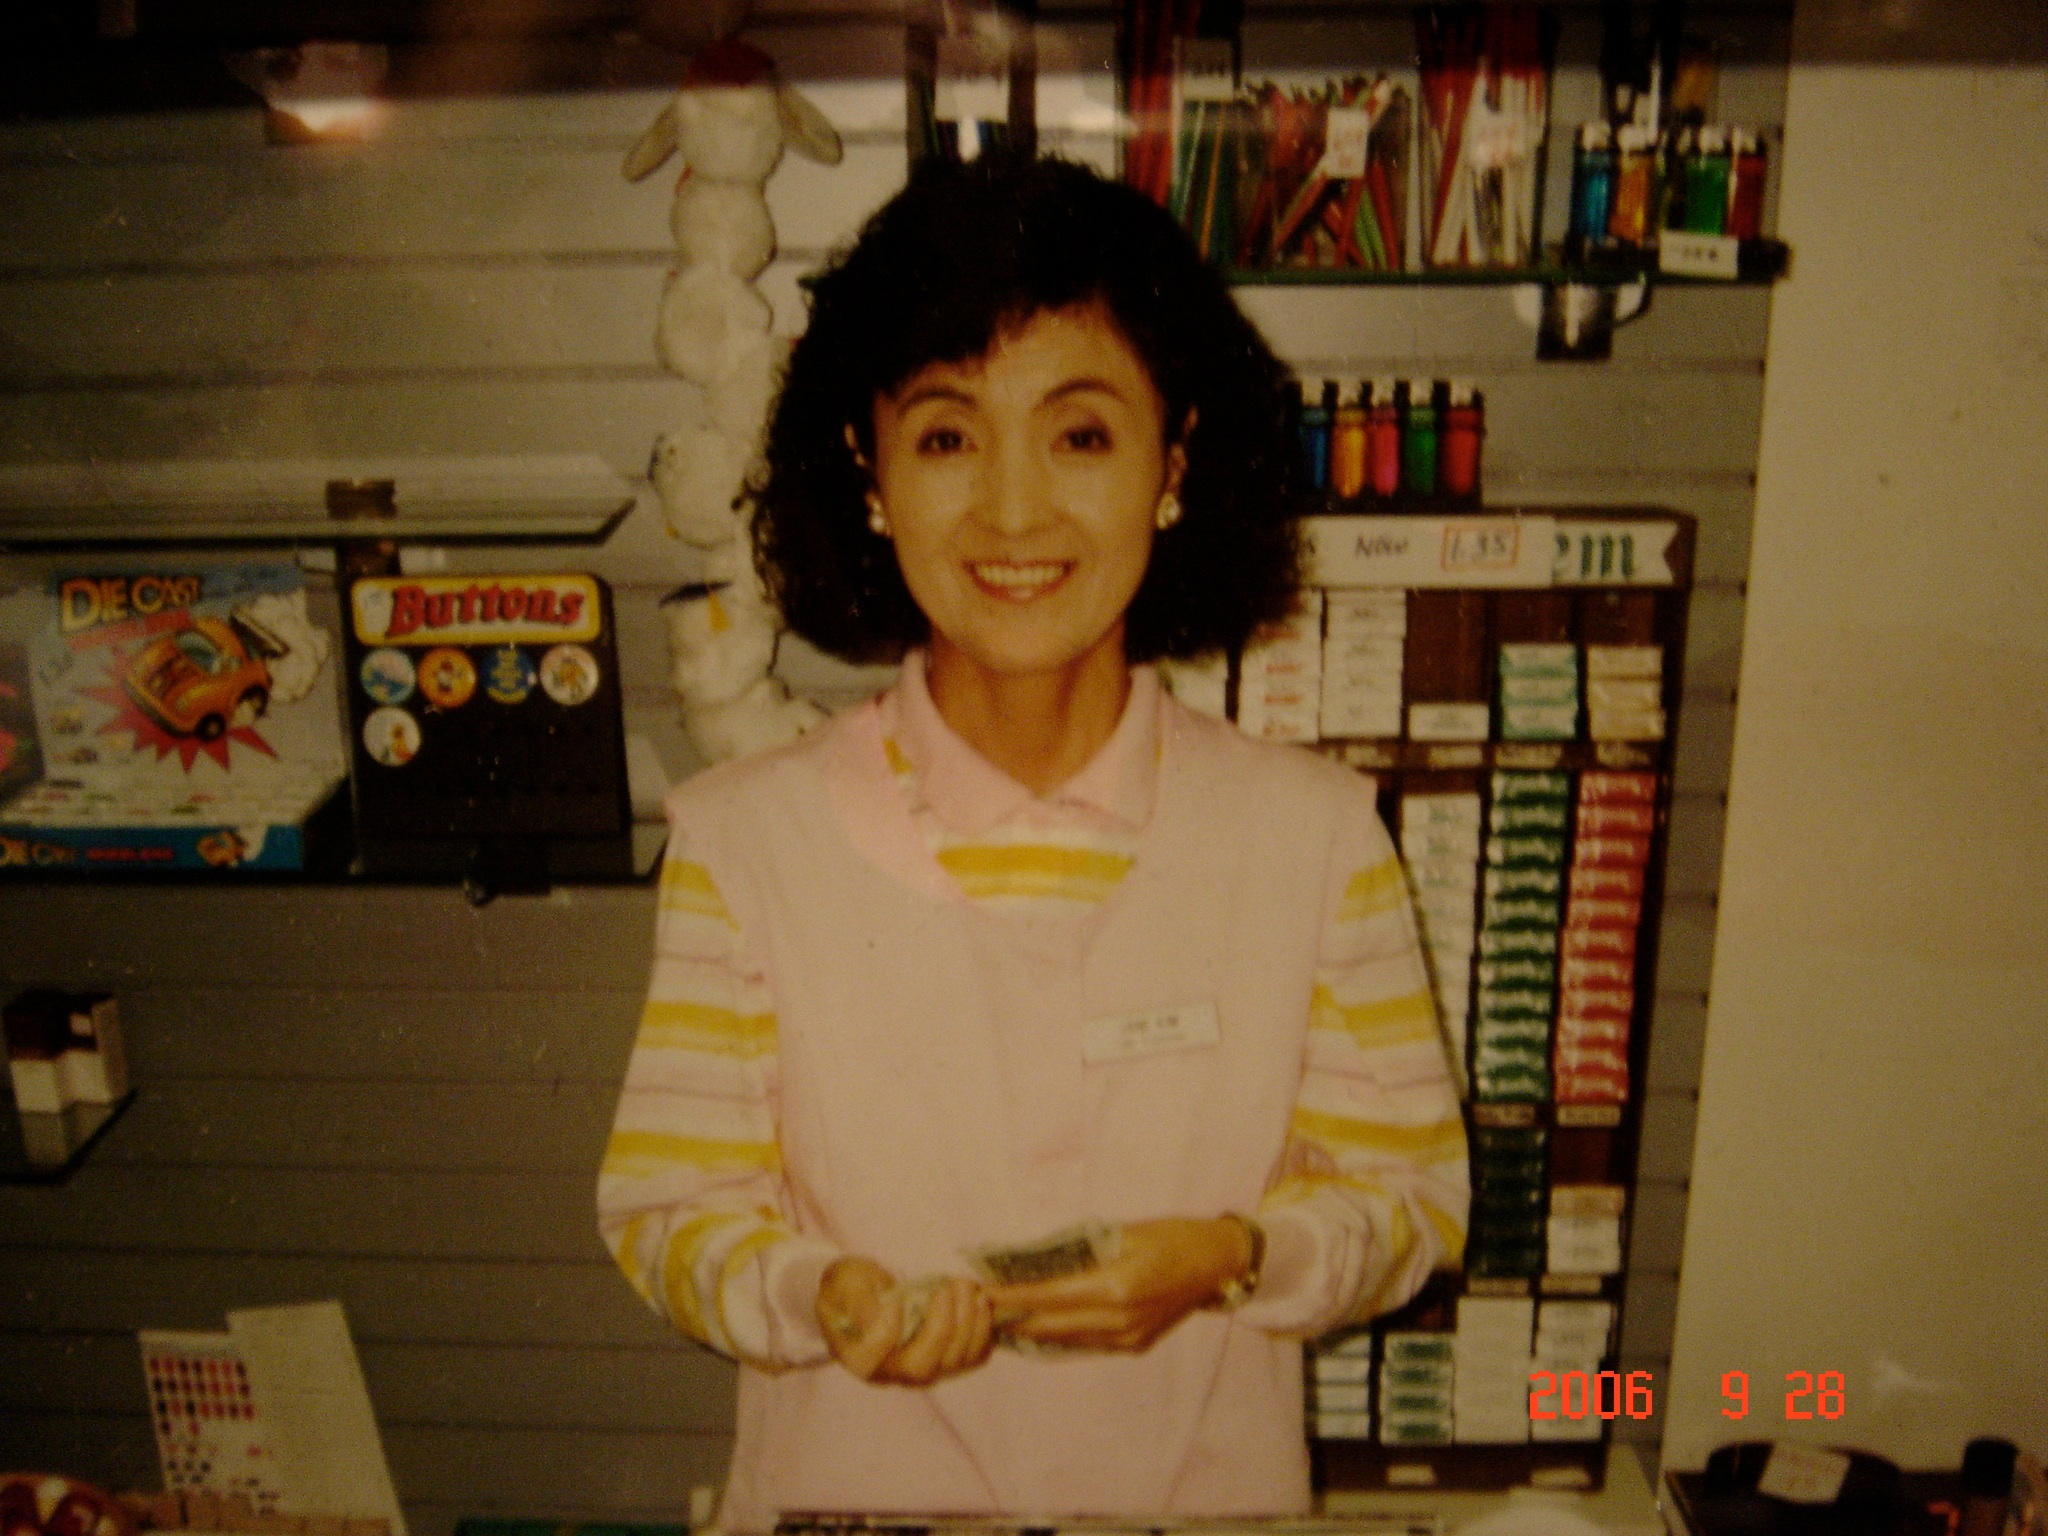 Jane Wha-Young Kim loved volunteering at the Guam Memorial Hospital. She particularly cherished holding newborns in the neonatal ward. Here she is manning the cash register at the hospital gift shop, in 1991.